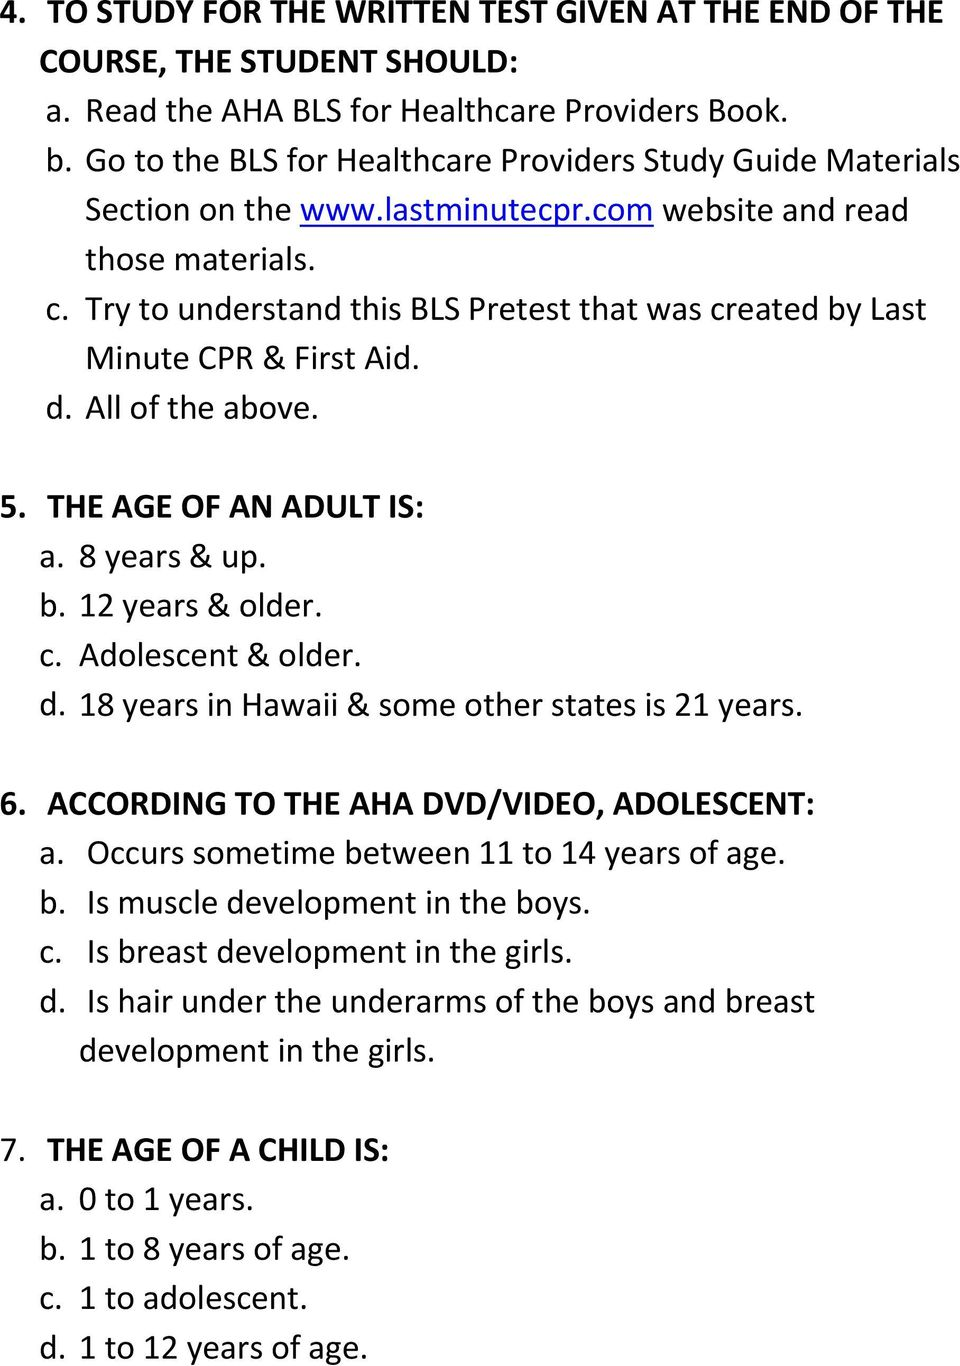 Try to understand this BLS Pretest that was created by Last Minute CPR & First Aid. d. All of the above. 5. THE AGE OF AN ADULT IS: a. 8 years & up. b. 12 years & older. c. Adolescent & older. d. 18 years in Hawaii & some other states is 21 years.